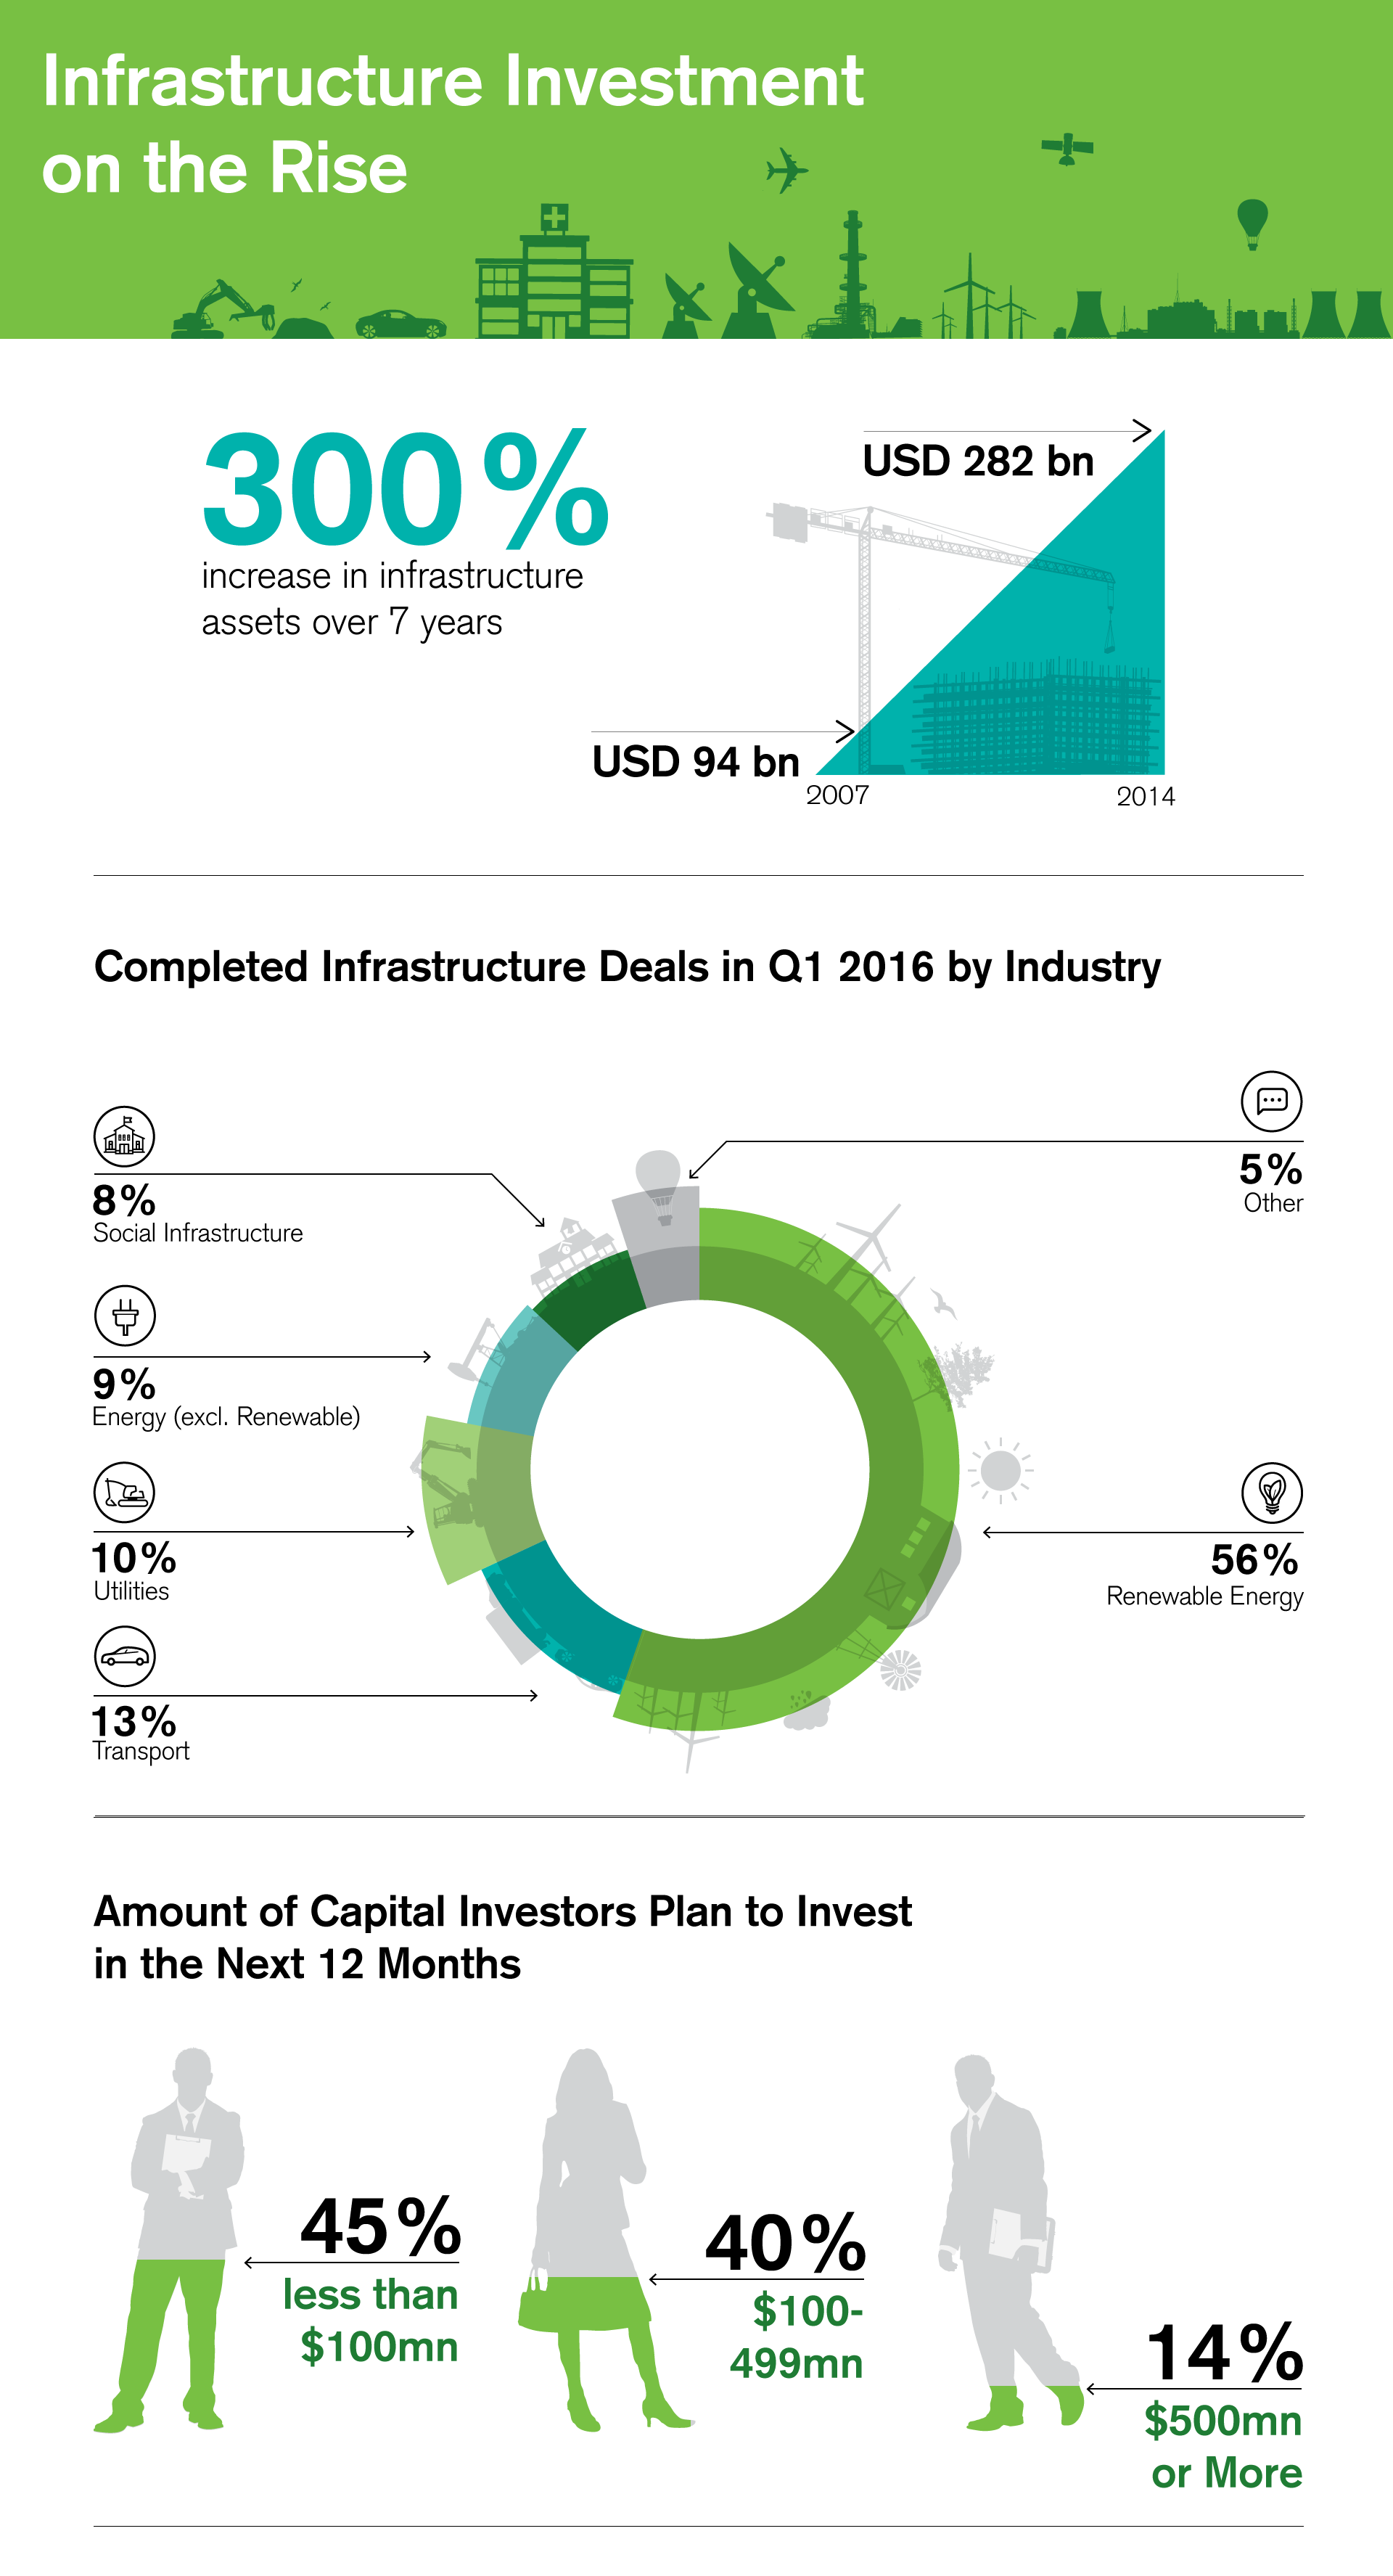 Infrastructure Investment on the Rise